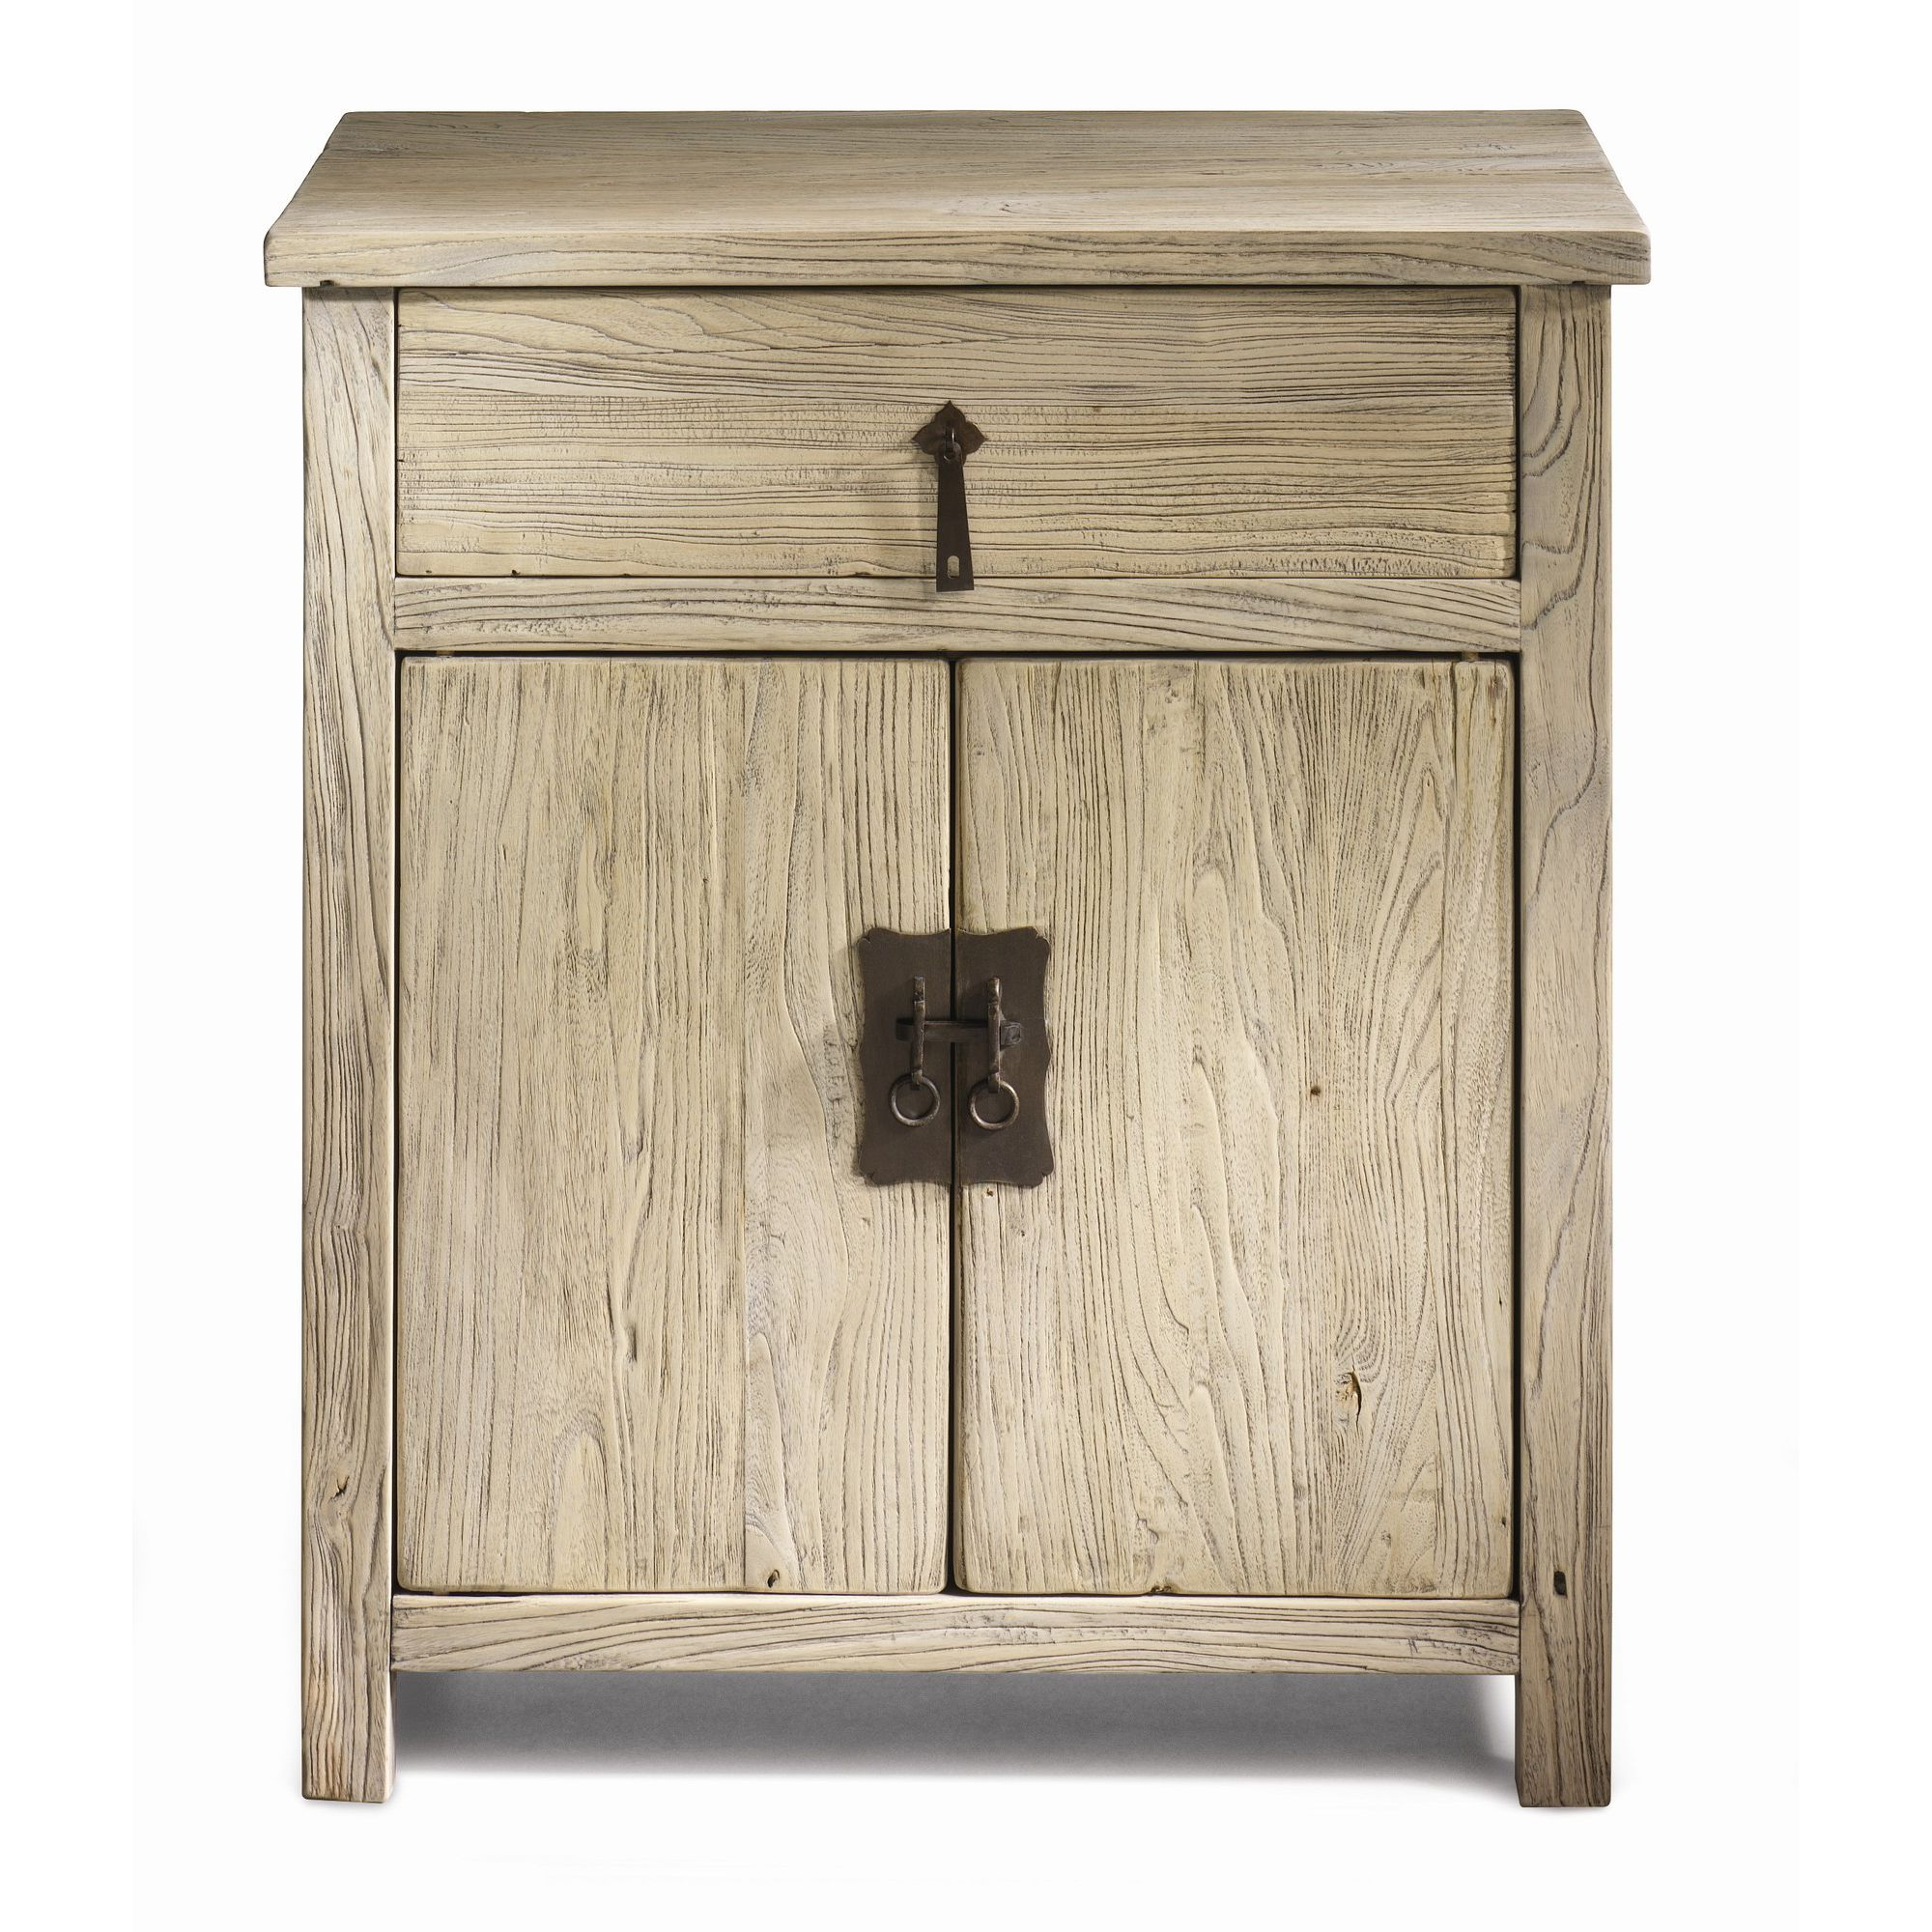 Shimu Chinese Country Furniture Side Cabinet at Tesco Direct